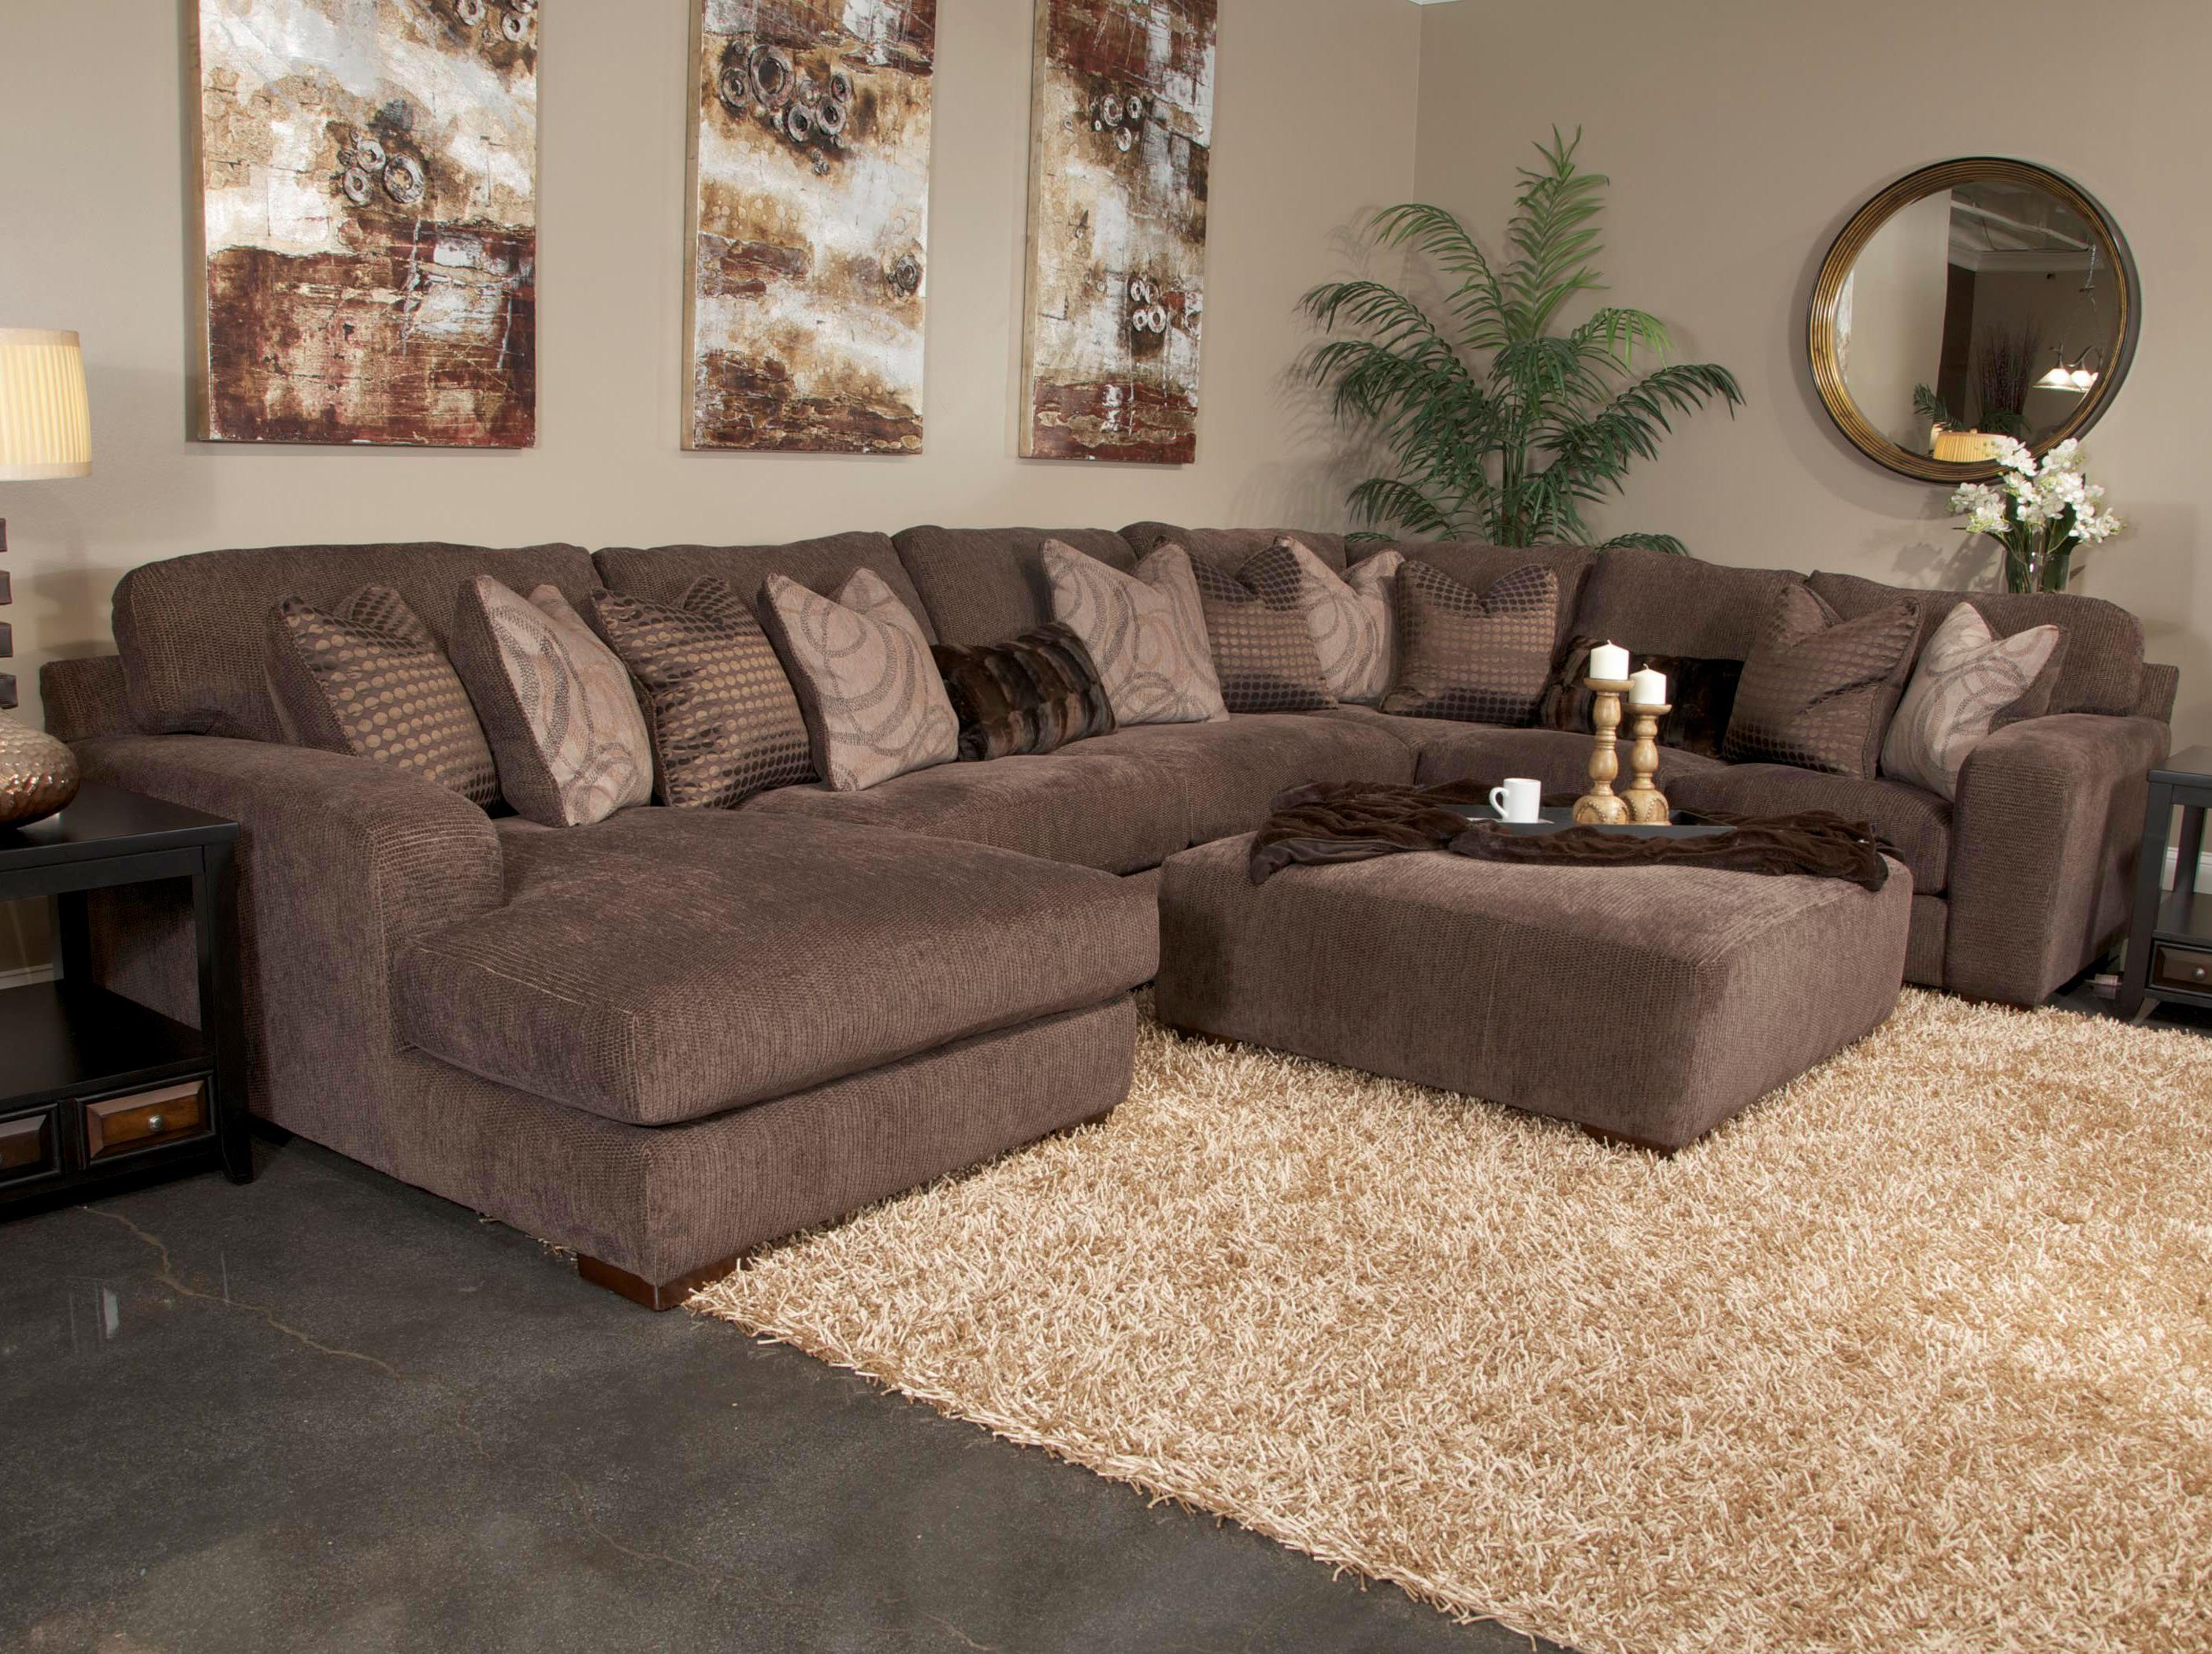 Jackson Furniture Serena Five Seat Sectional Sofa with Chaise on